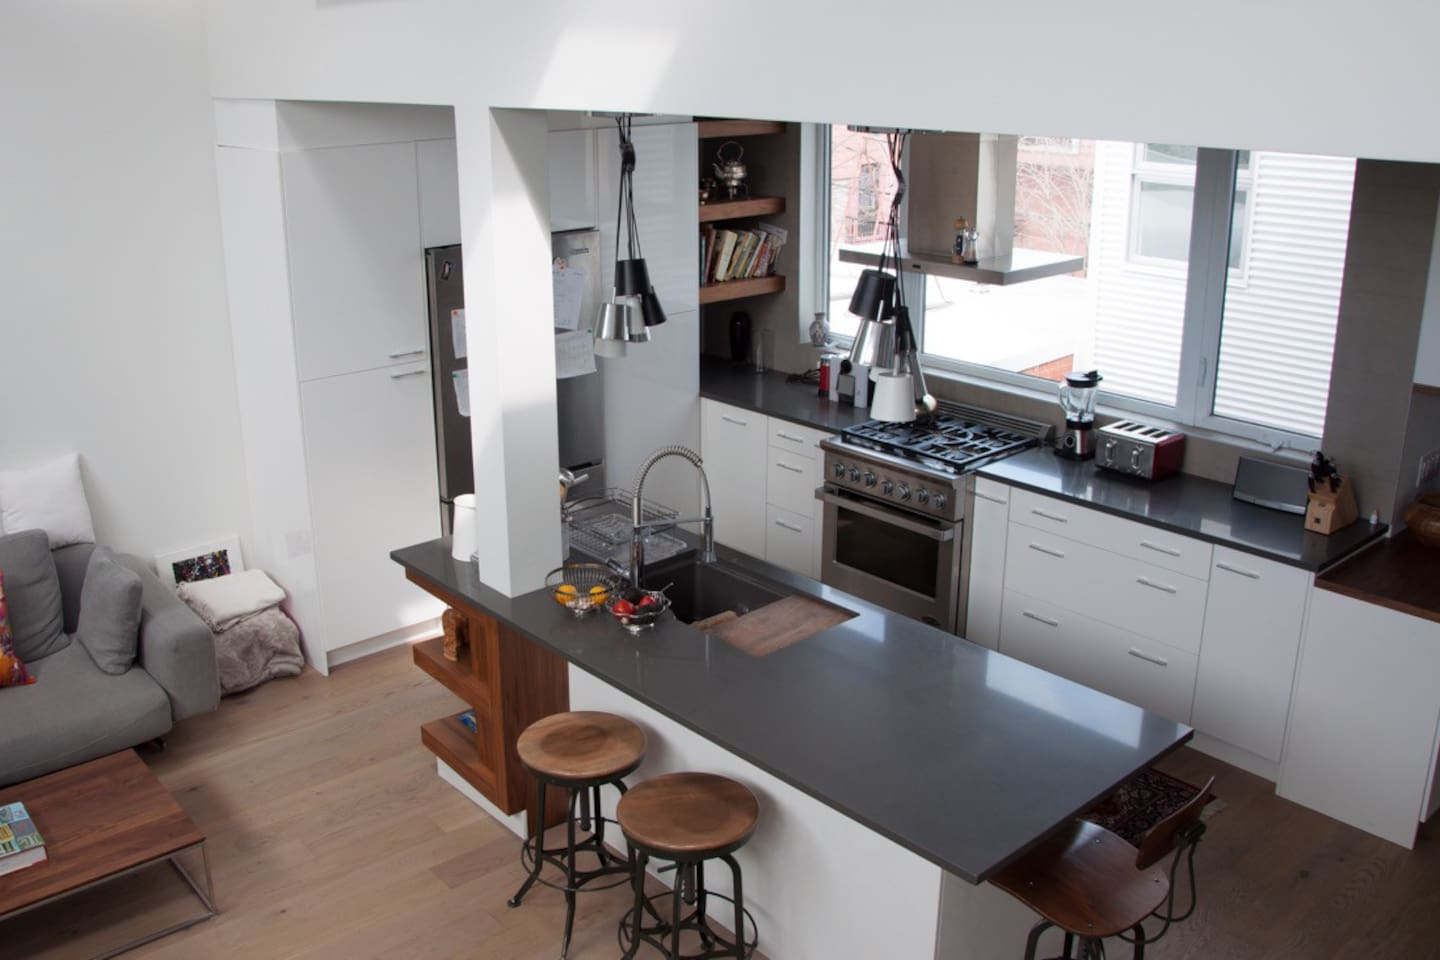 View of kitchen from mezzanine stairs